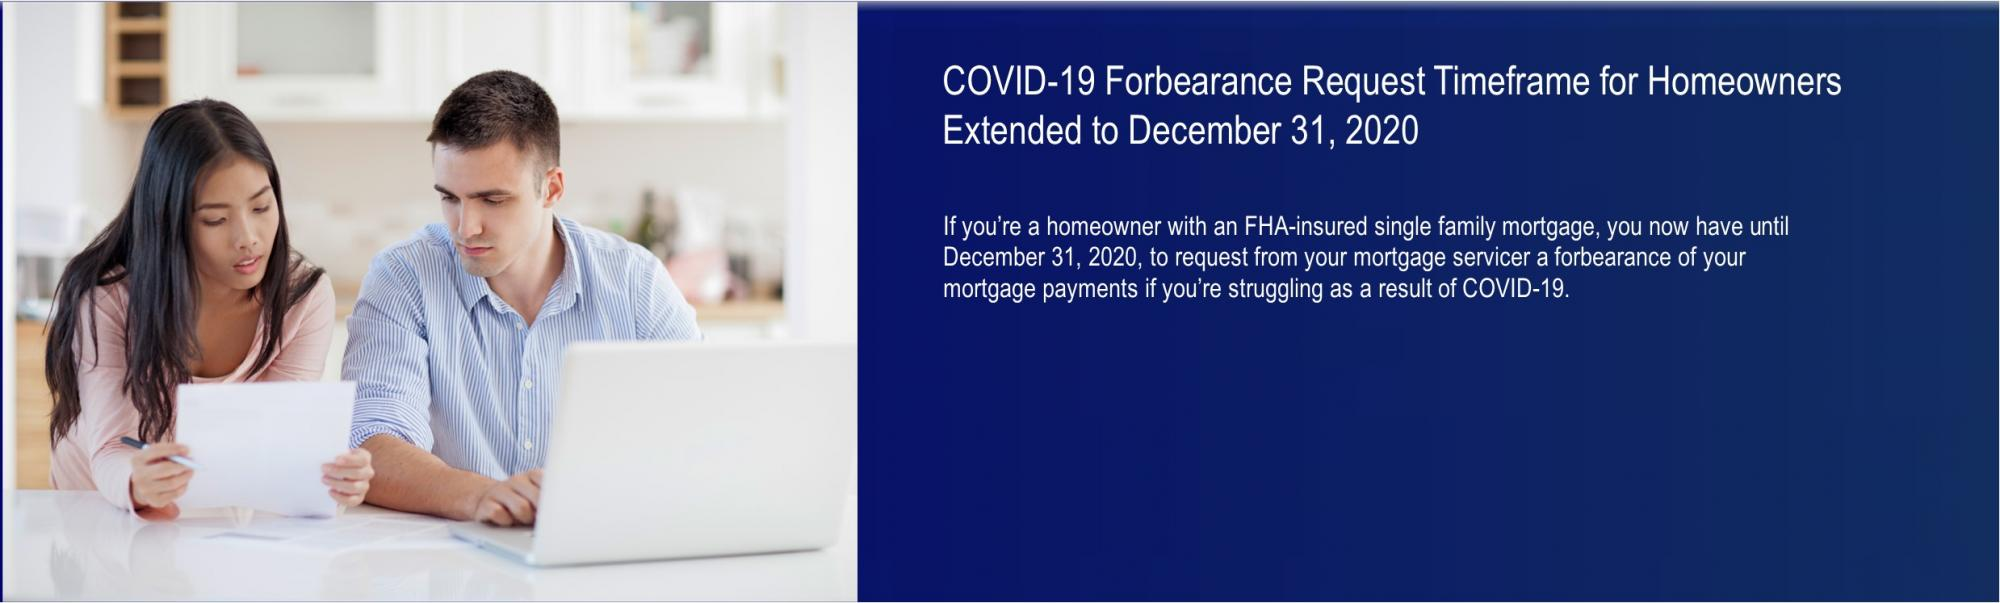 [COVID-19 Forbearance Request Timeframe for Homeowners Extended to December 31, 2020].